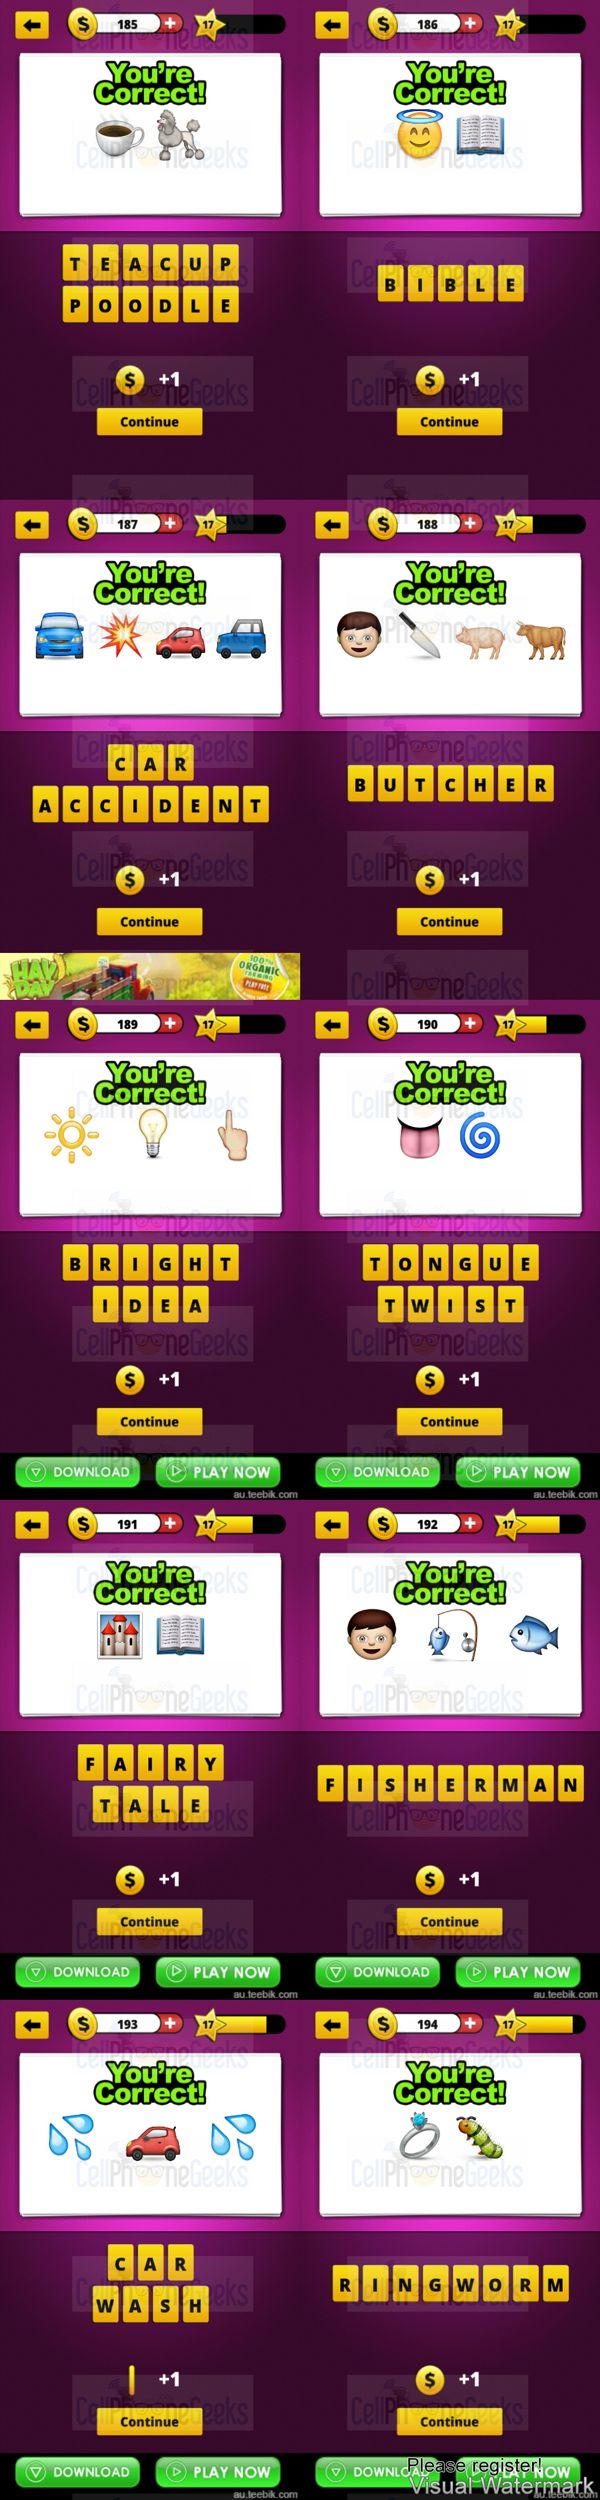 Guess The Emoji Level 17 Answers Cellphonegeeks Guess The Emoji Answers Guess The Emoji Emoji Answers